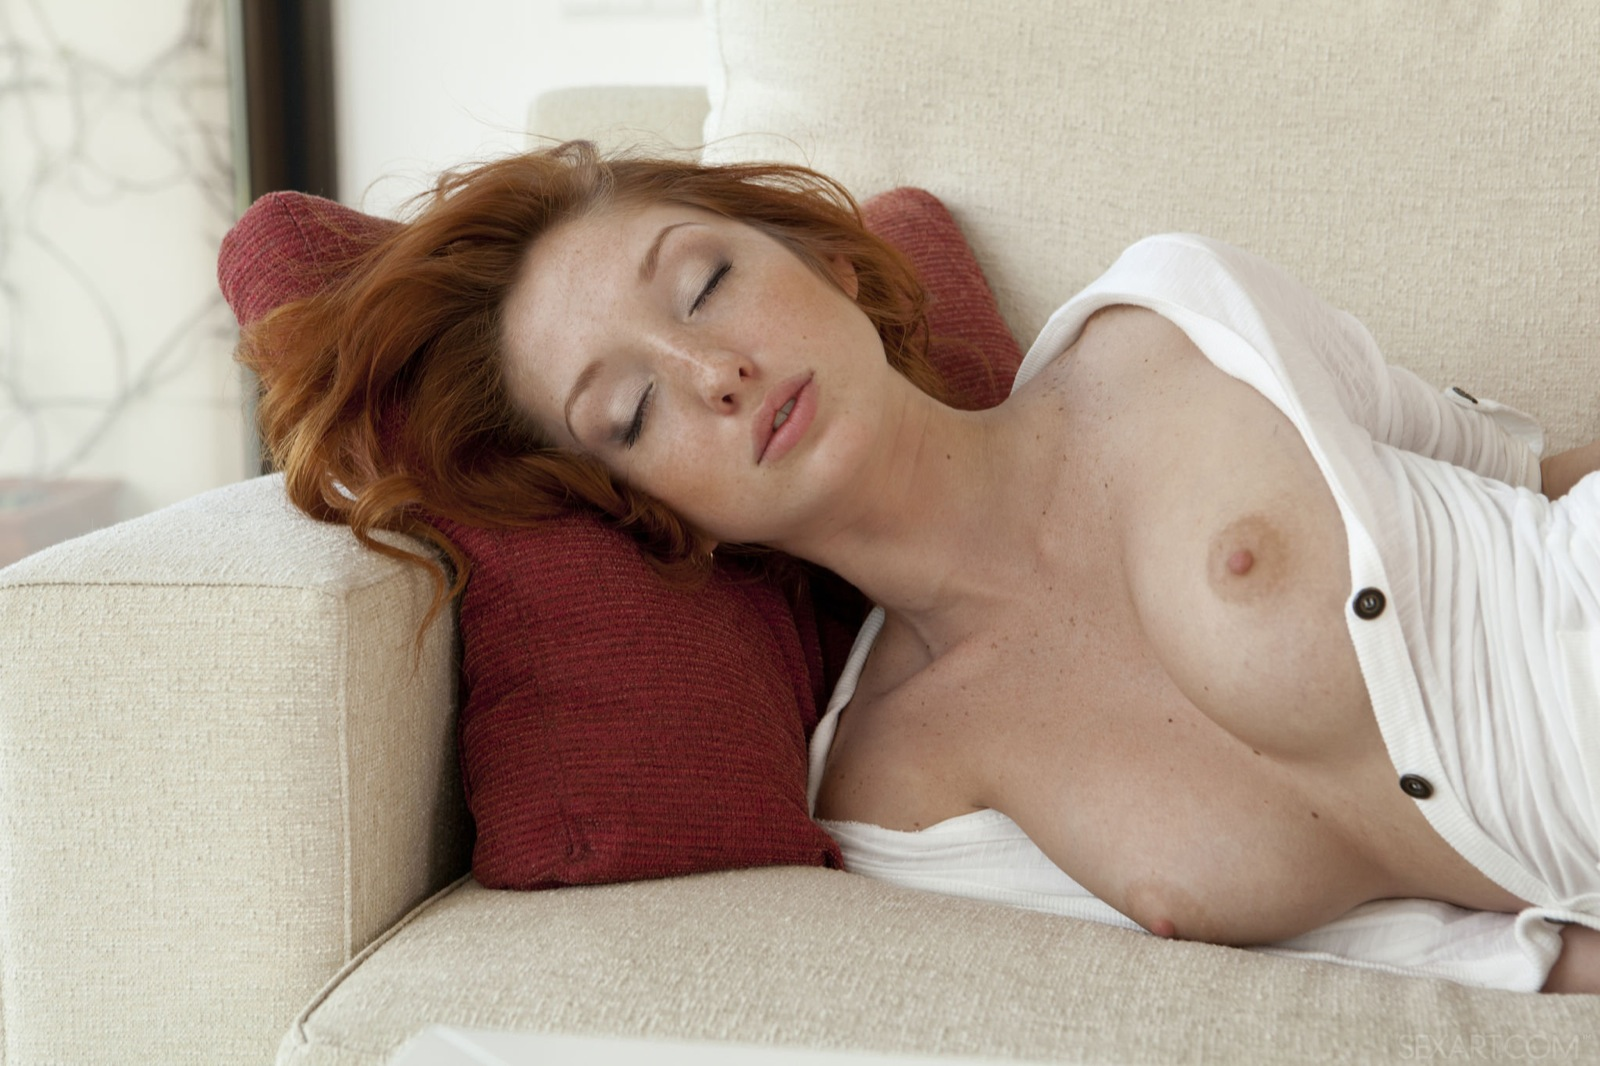 Nude Skinny Redhead Girl On The Couch